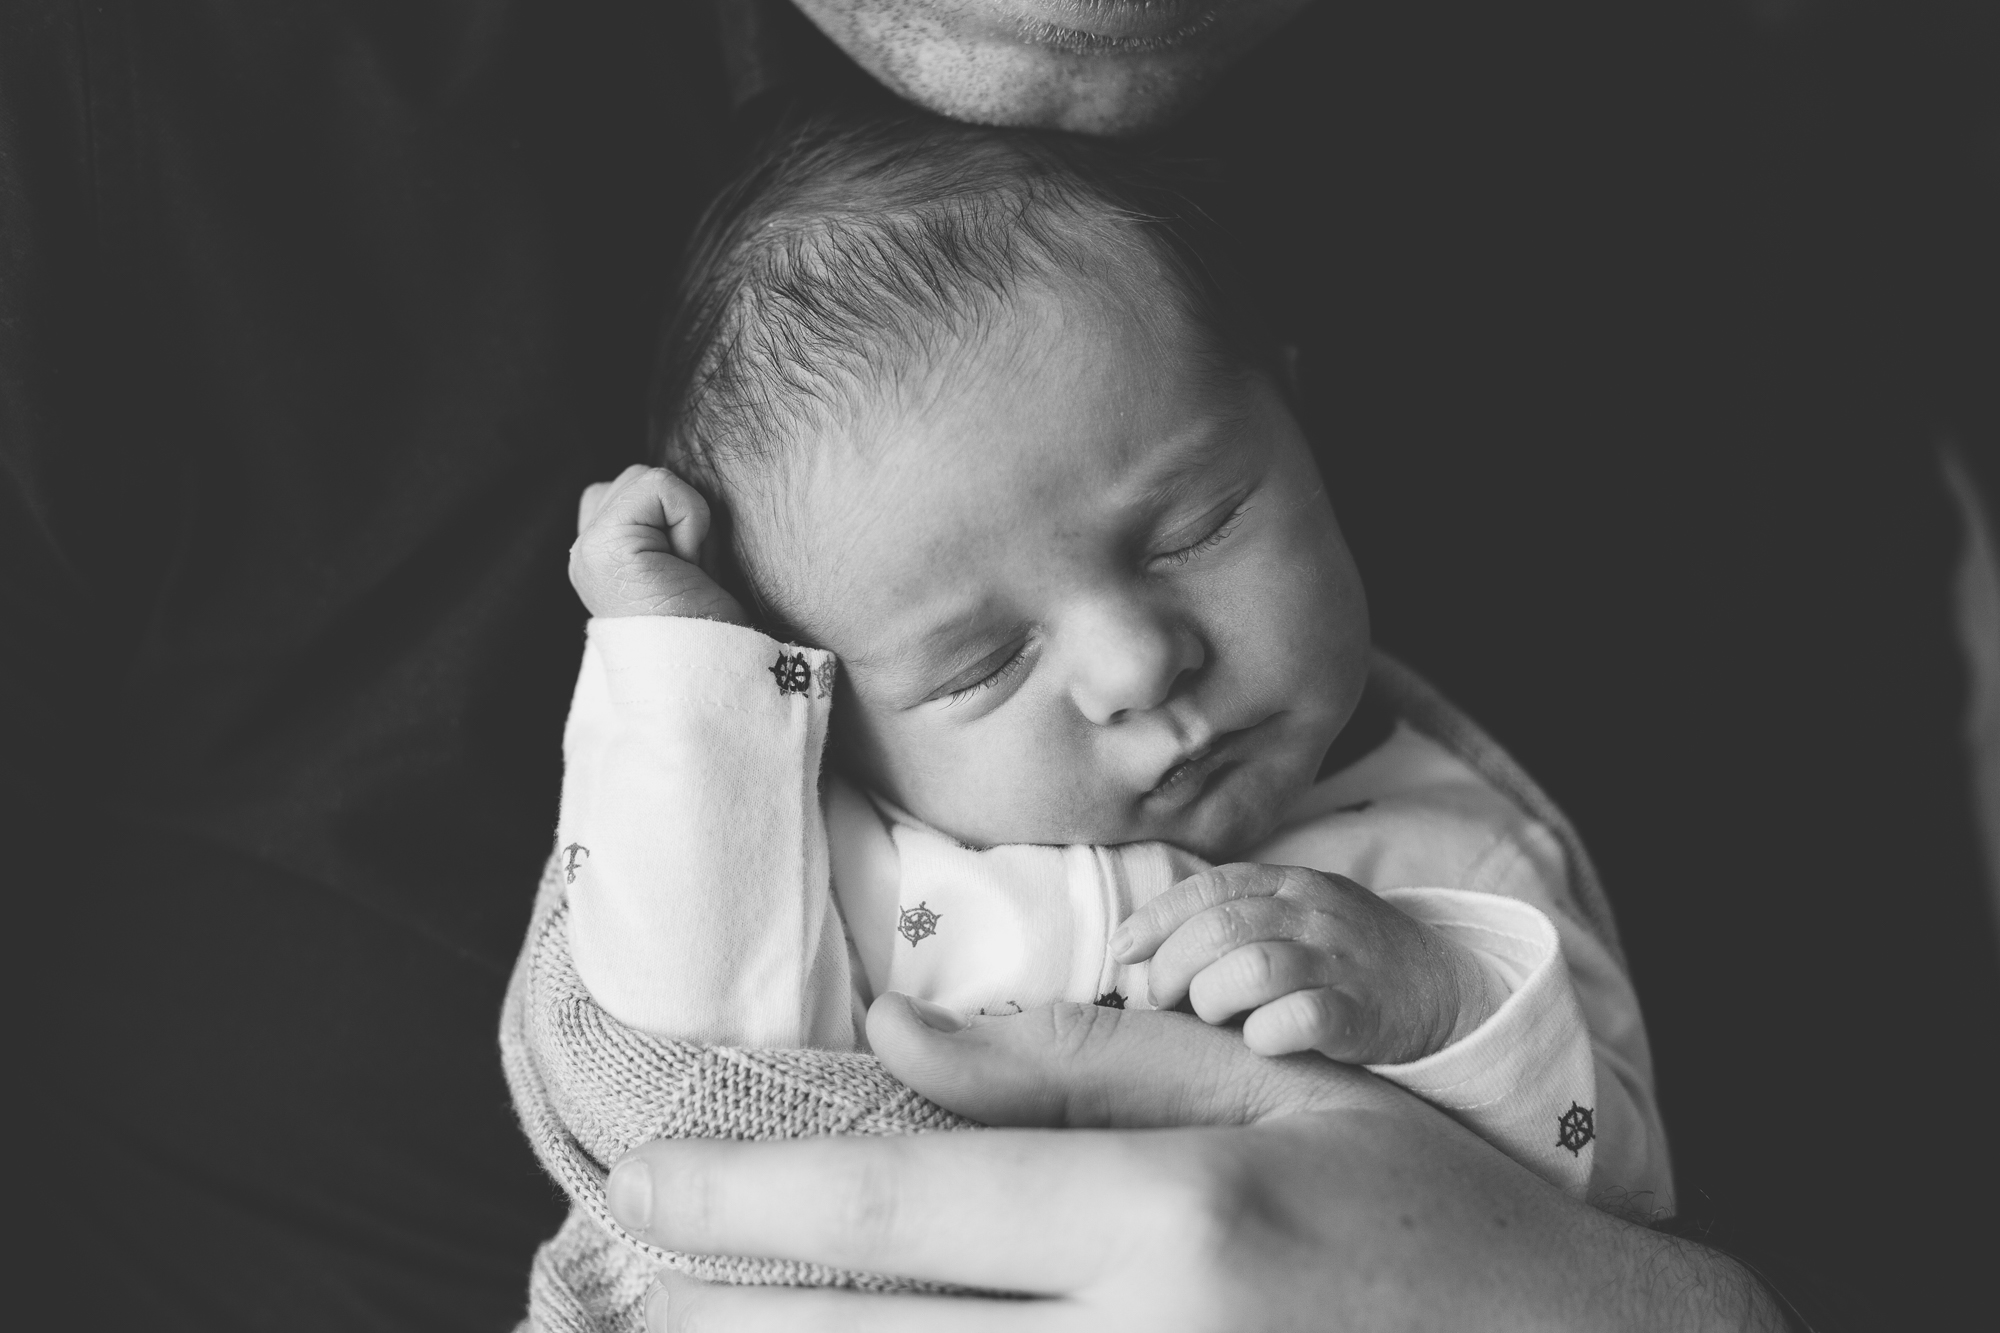 newborn Photographer in Aberdeen - 2017 Highlights